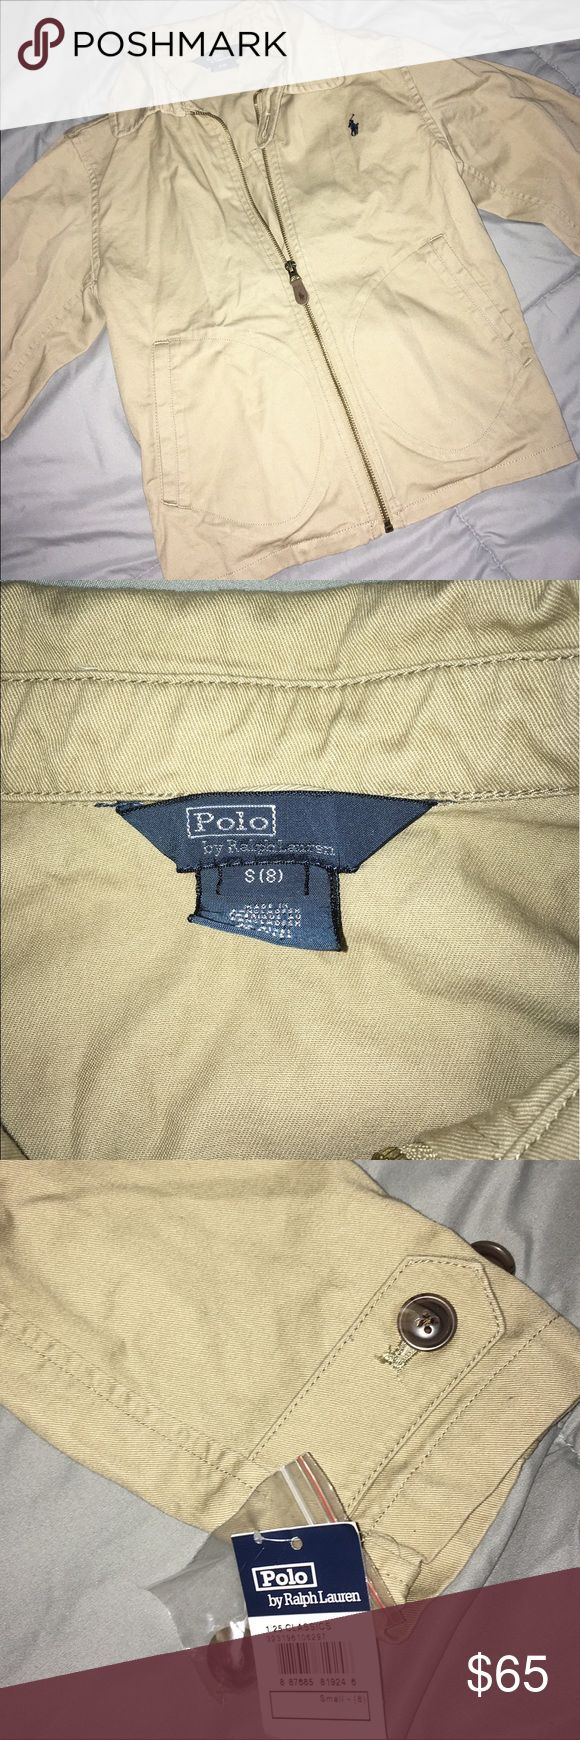 Kids Polo Jacket Brand new Khaki kids polo coat size Small (8). This jacket can be worn by either boy or girl! Polo by Ralph Lauren Jackets & Coats